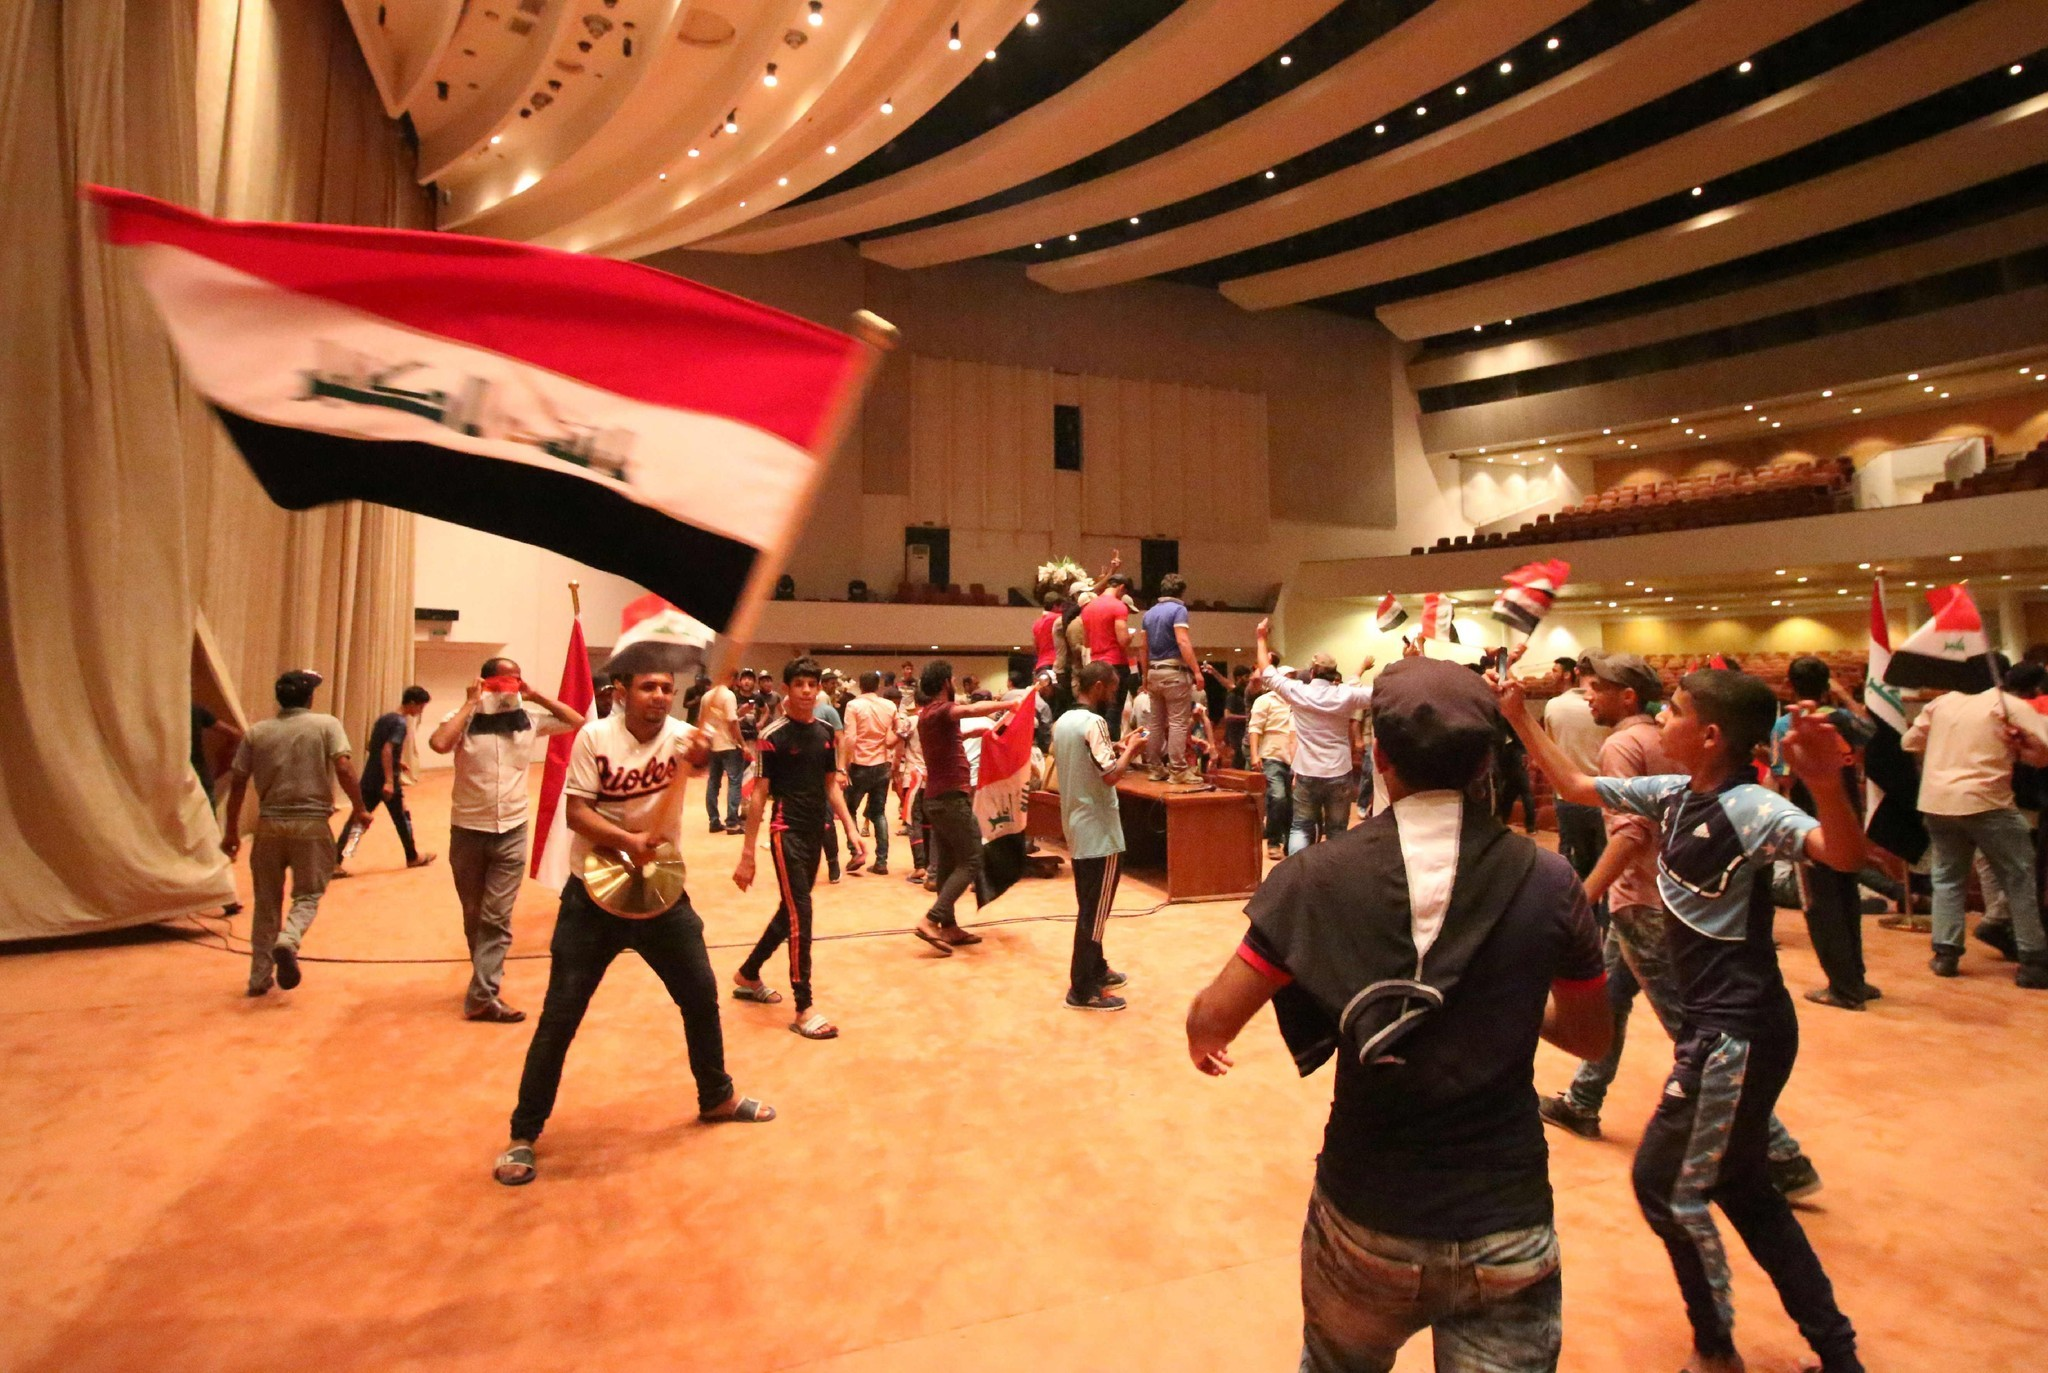 Bal-a-protestor-in-an-orioles-jersey-stormed-the-iraqi-parliament-building-20160501